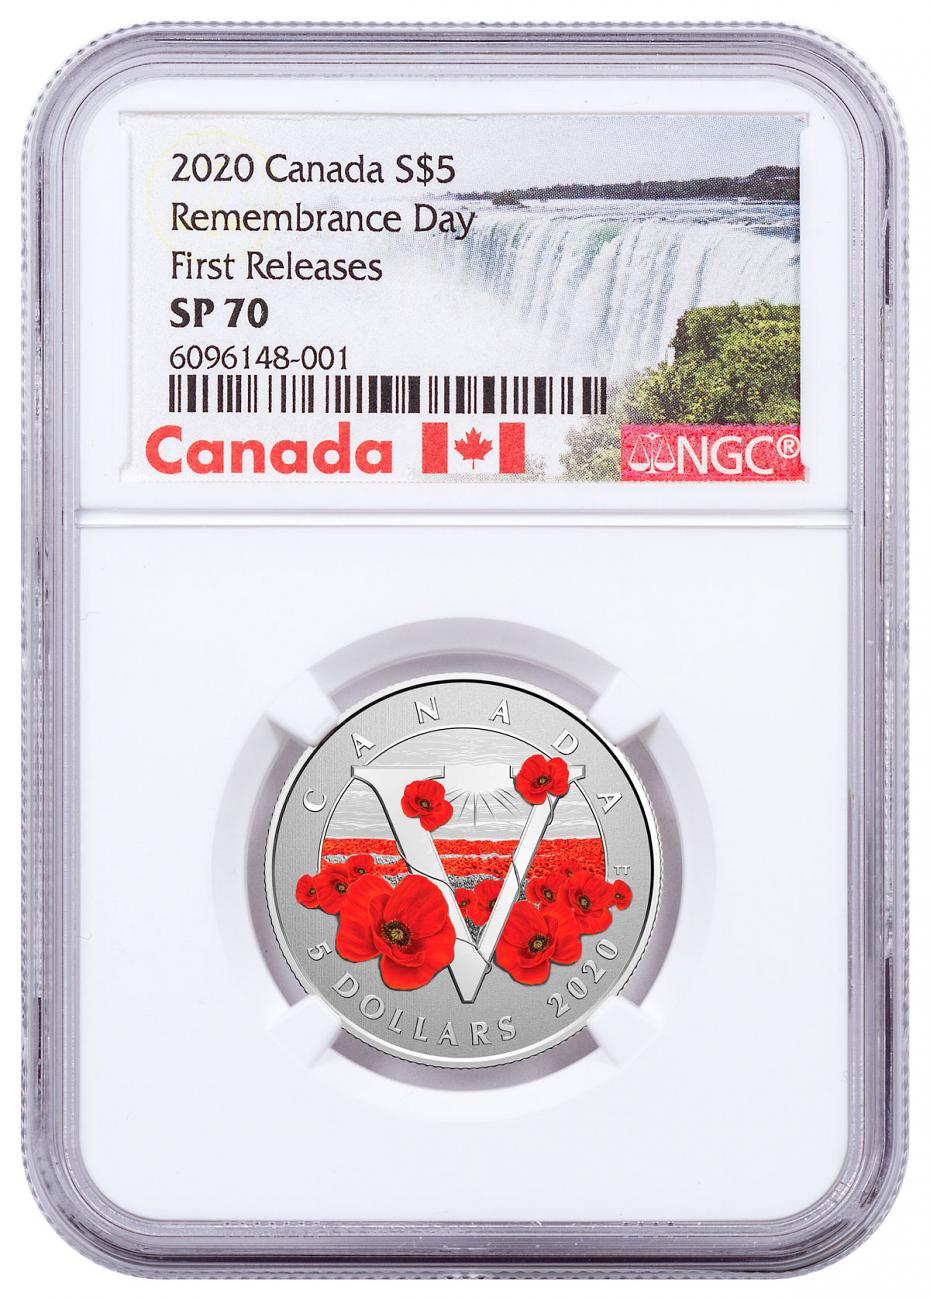 2020 Canada Silver $5 Moments to Hold- Remembrance Day Specimen Coin NGC SP70 FR Exclusive Canada Label